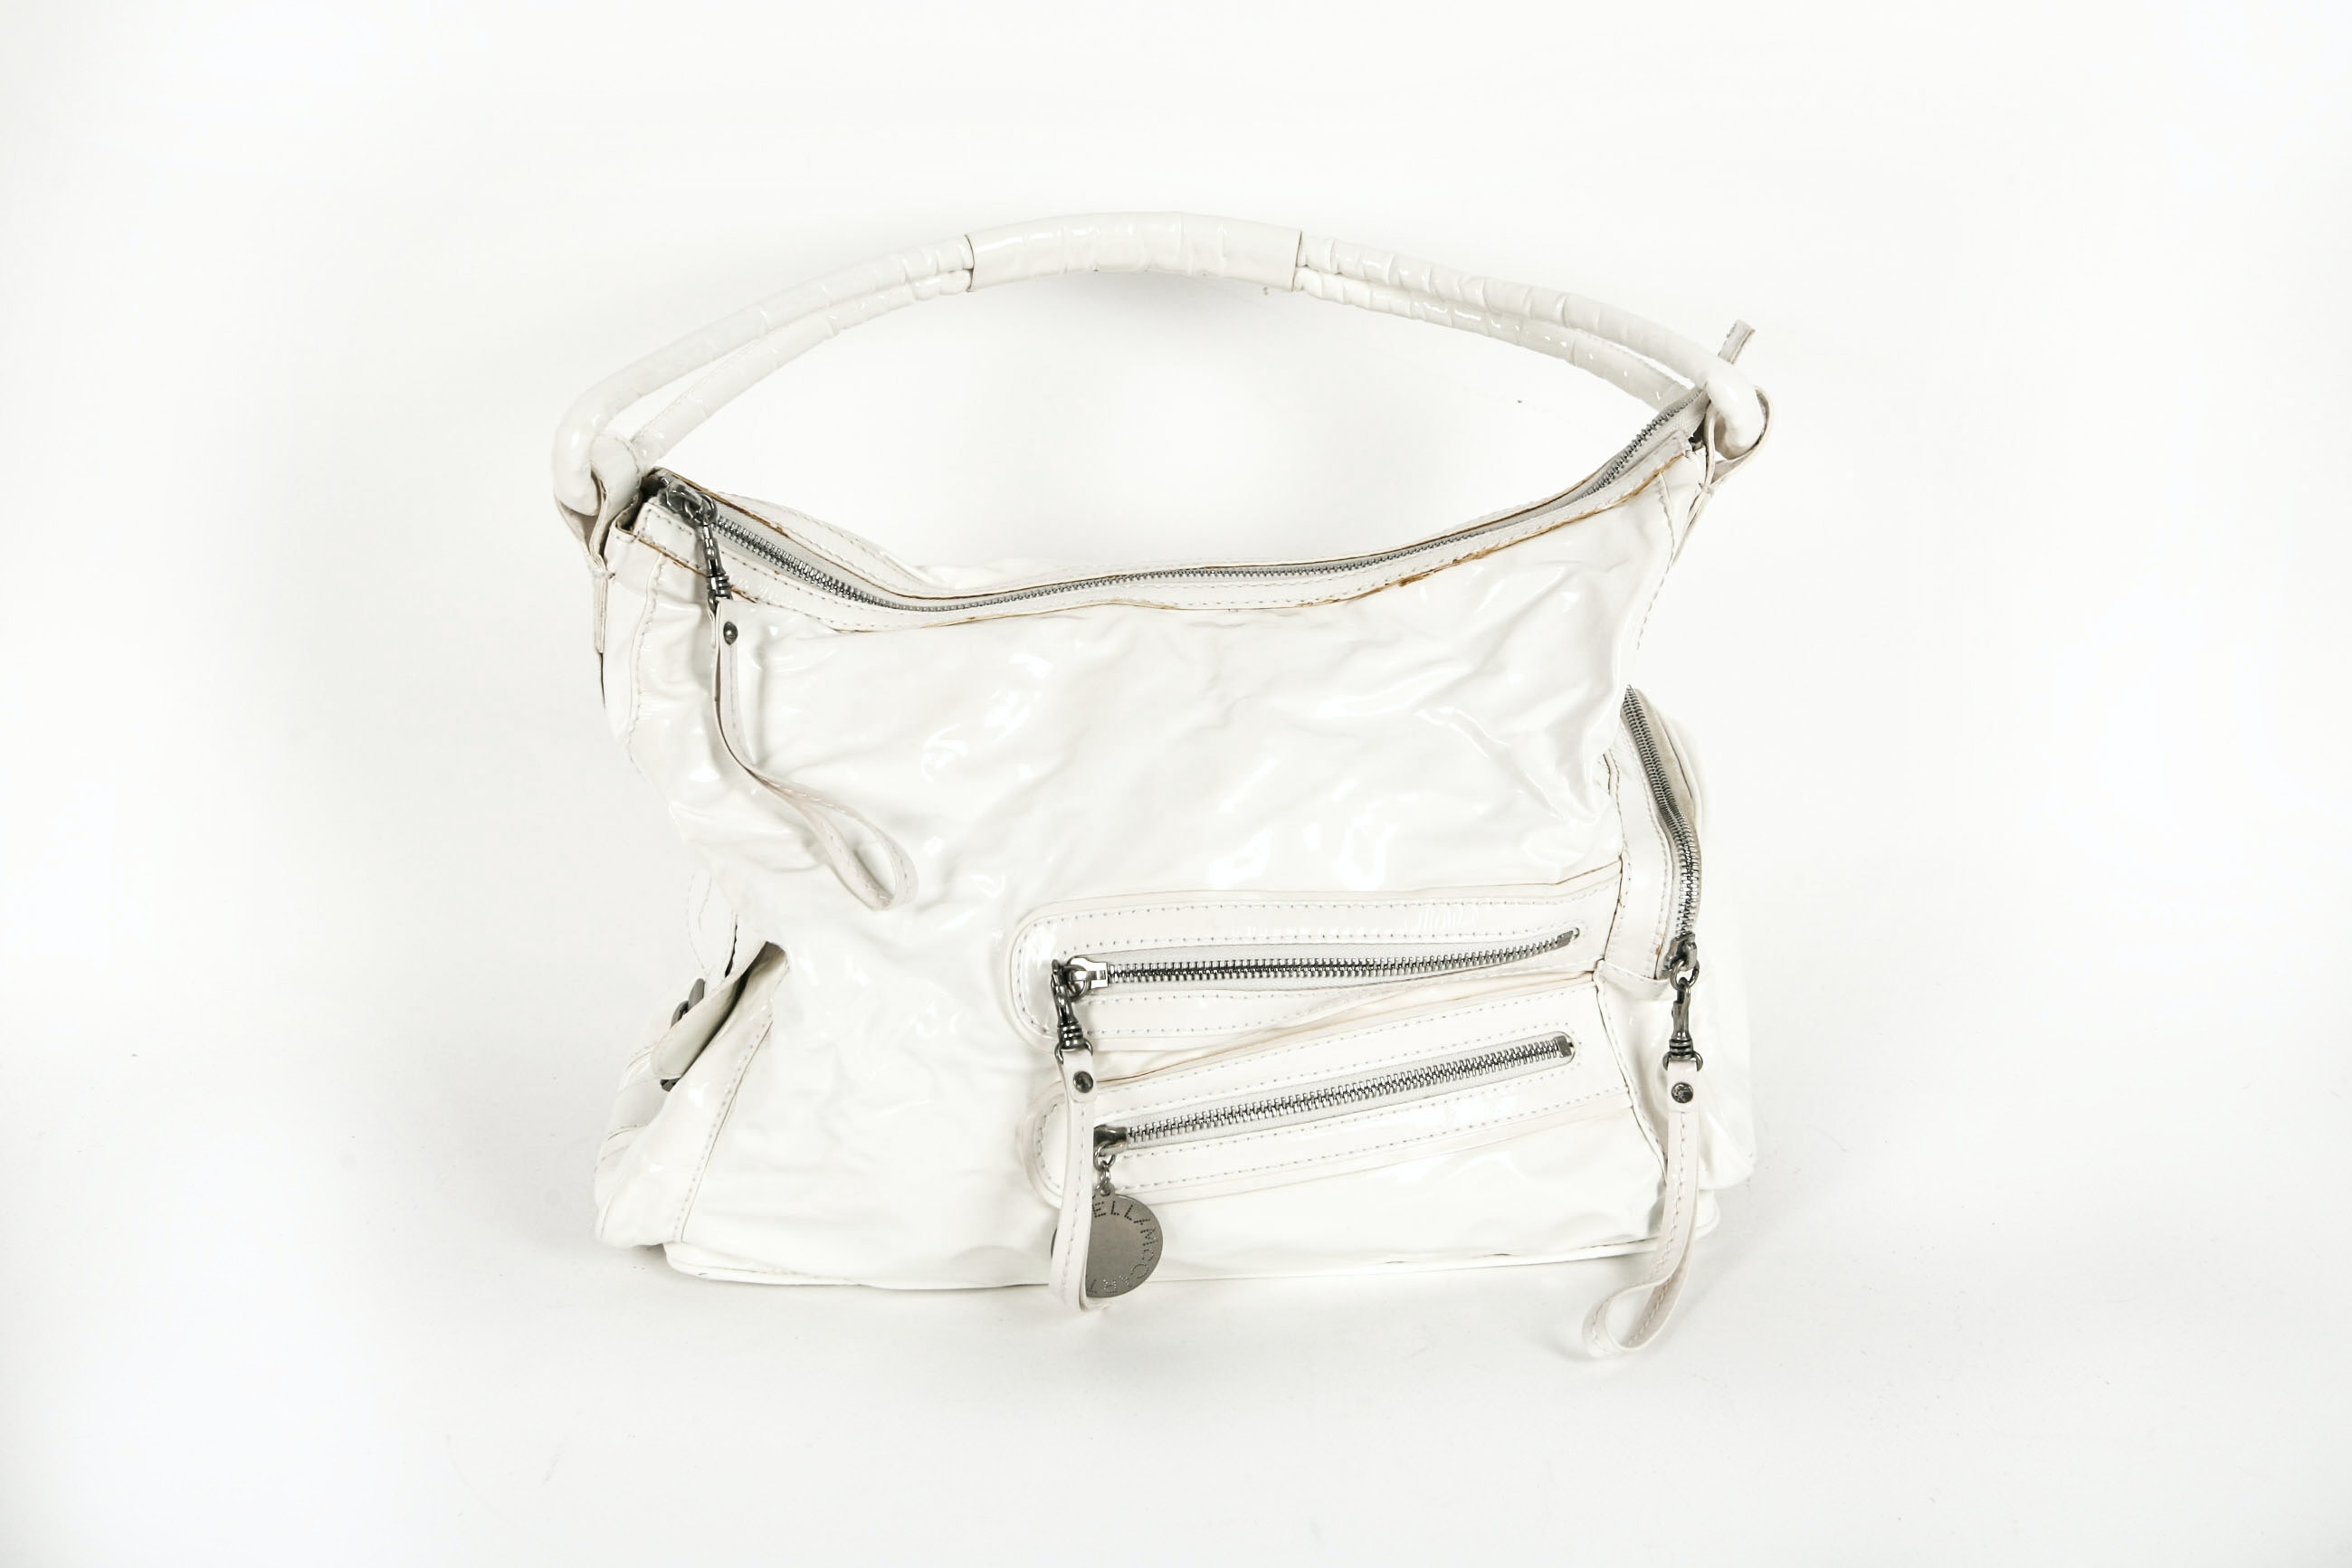 White Vegan Patent Leather Stella McCartney Purse